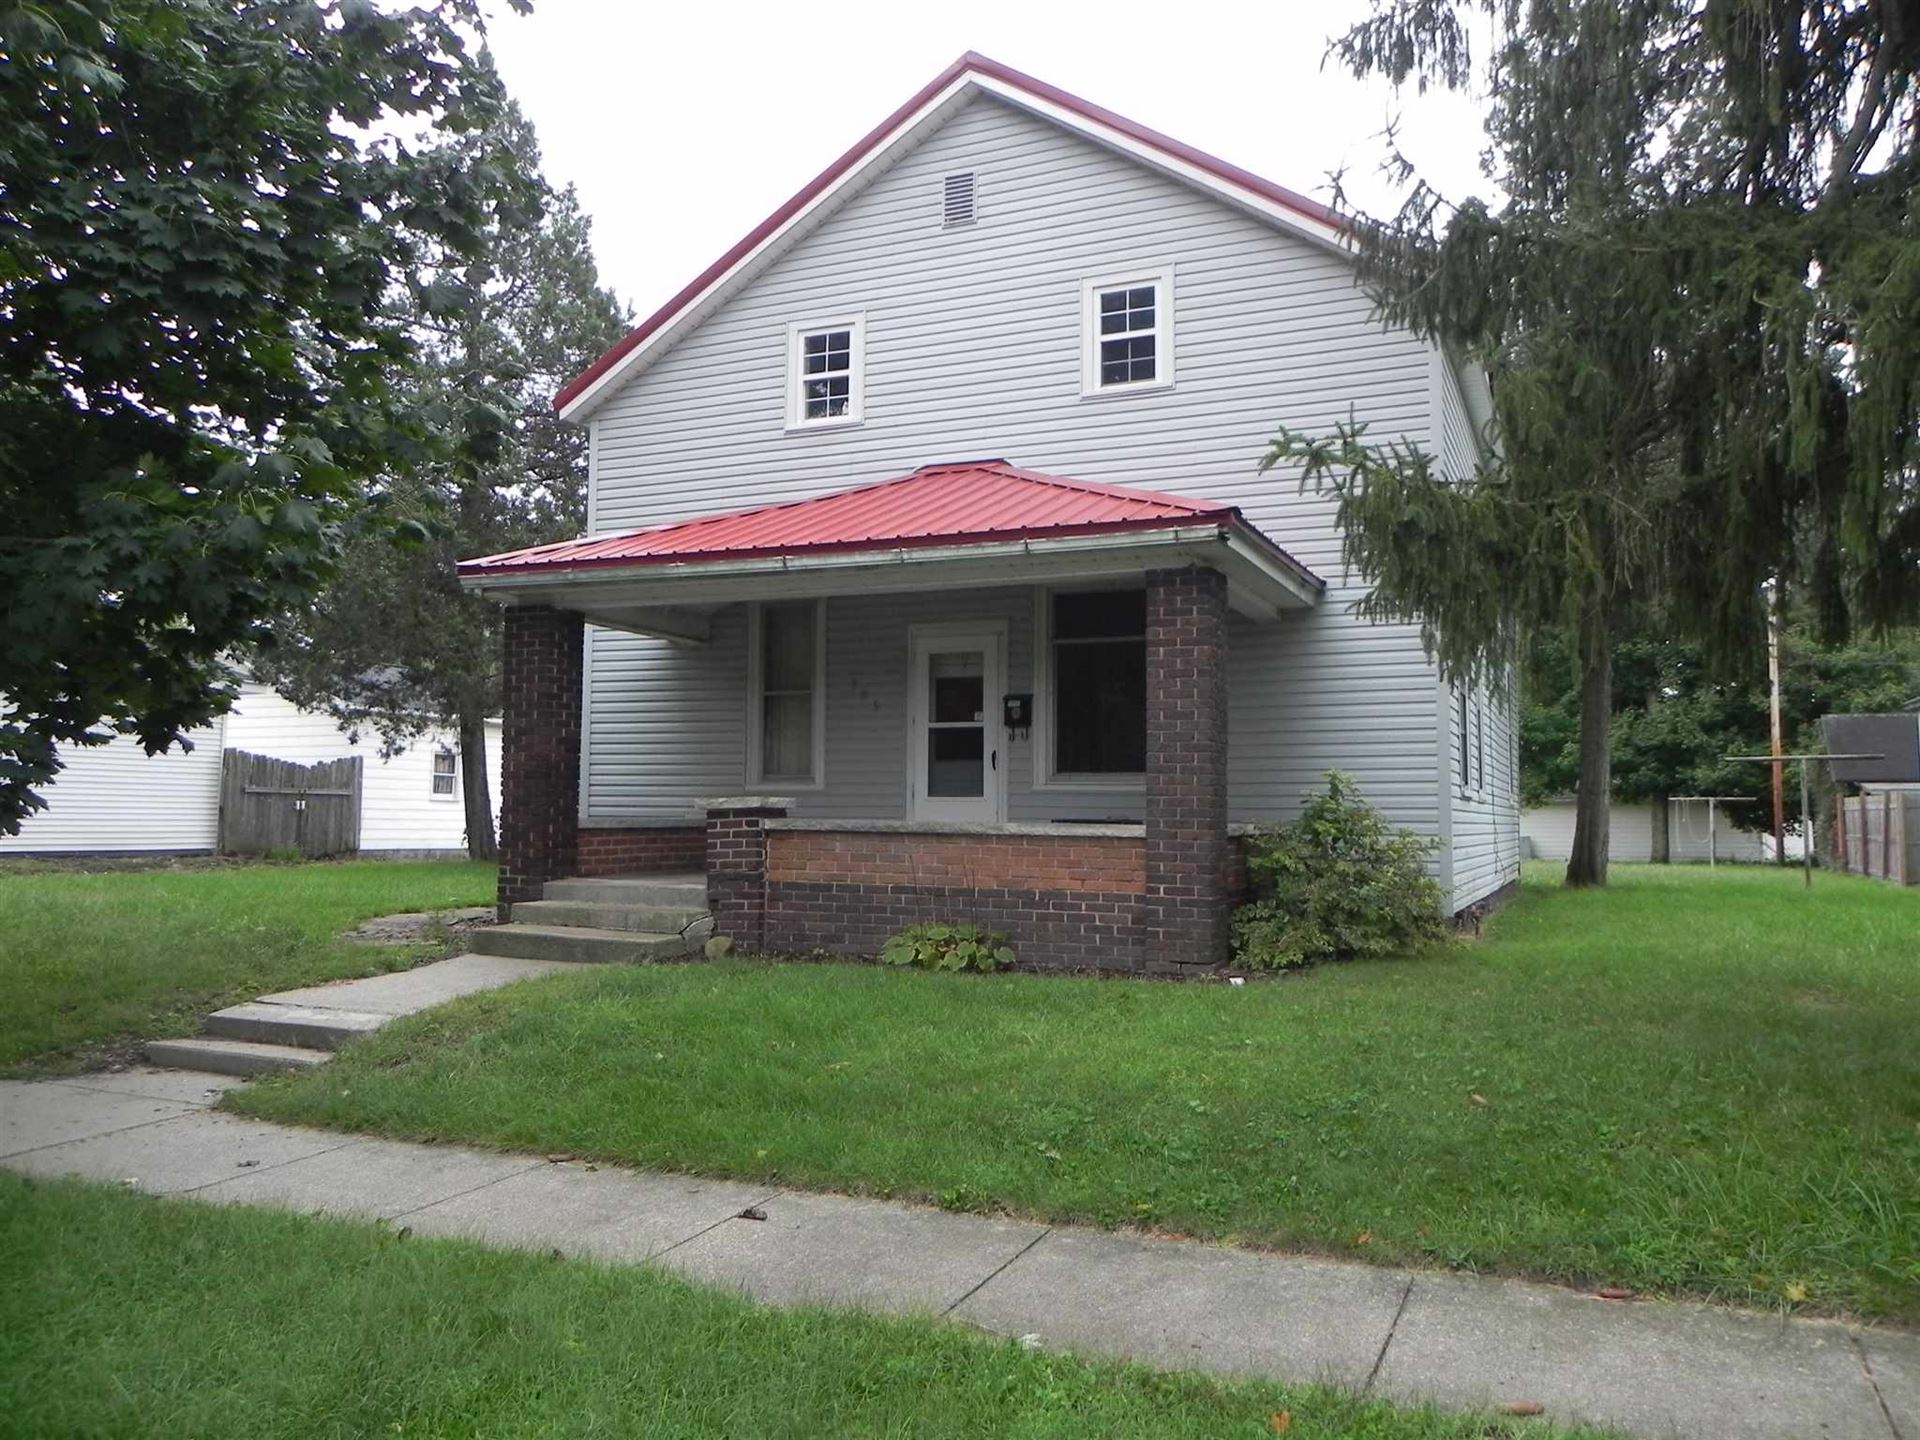 Photo of 305 W 3rd Street, North Manchester, IN 46962 (MLS # 202007136)